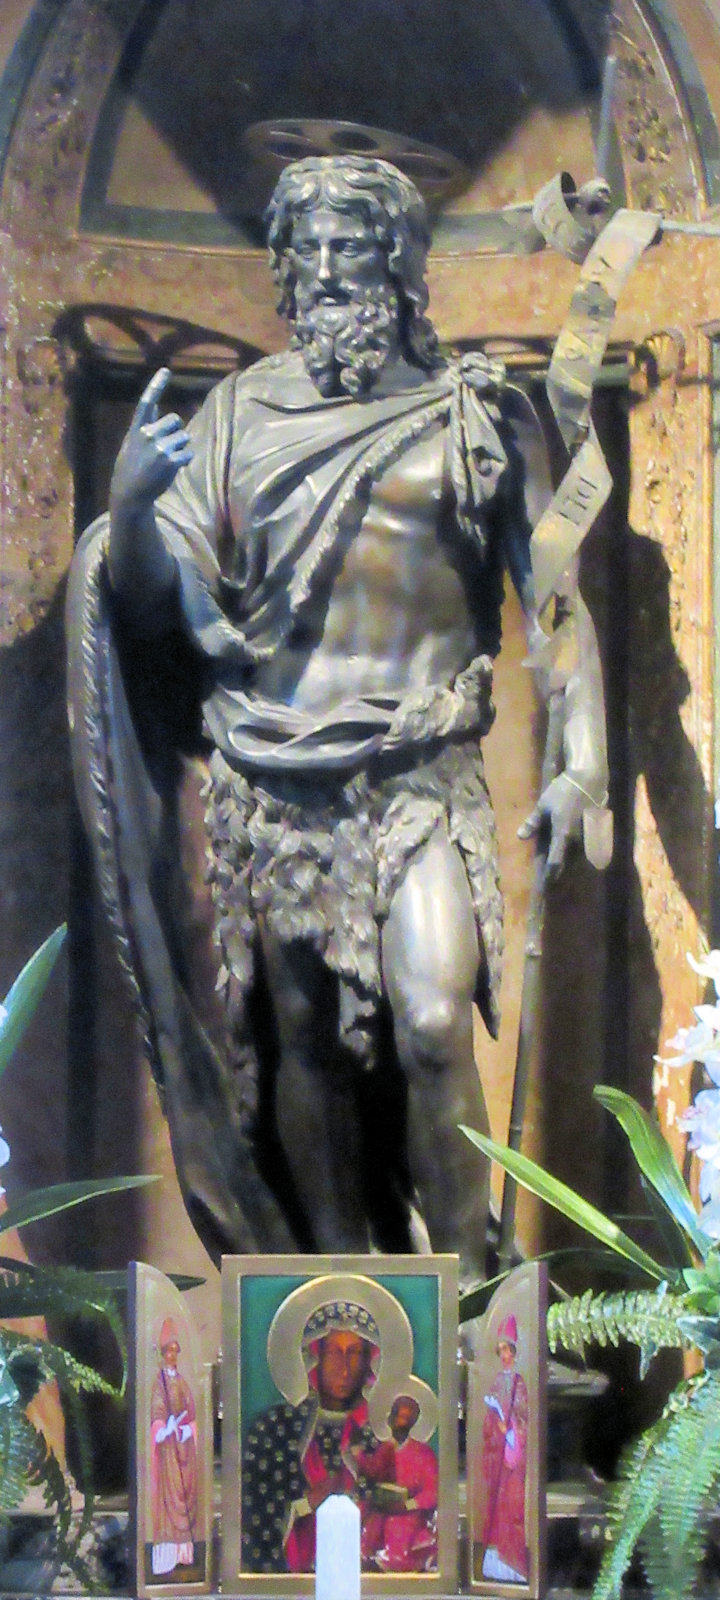 Statue in der Taufkapelle San Giovanni in Fonte am Lateran in Rom